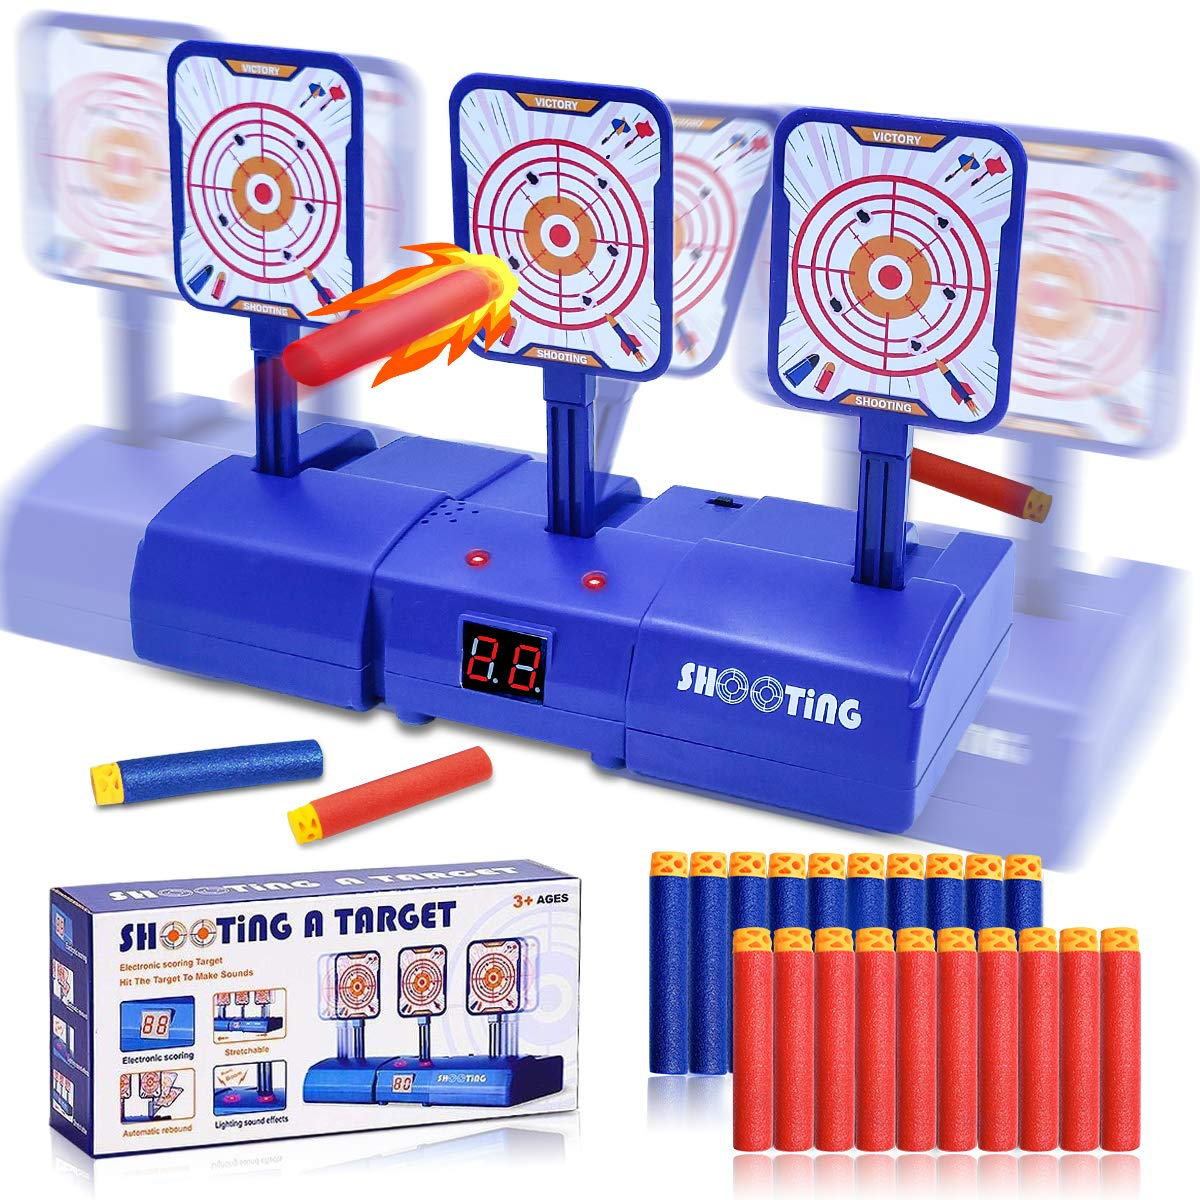 Electronic Digital Target for Nerf Moving Shooting Auto Reset Targets for Nerfs Guns Toys with 20 PCS Darts Idea Easter Basket Toy Gift for Boys Girls Toddlers